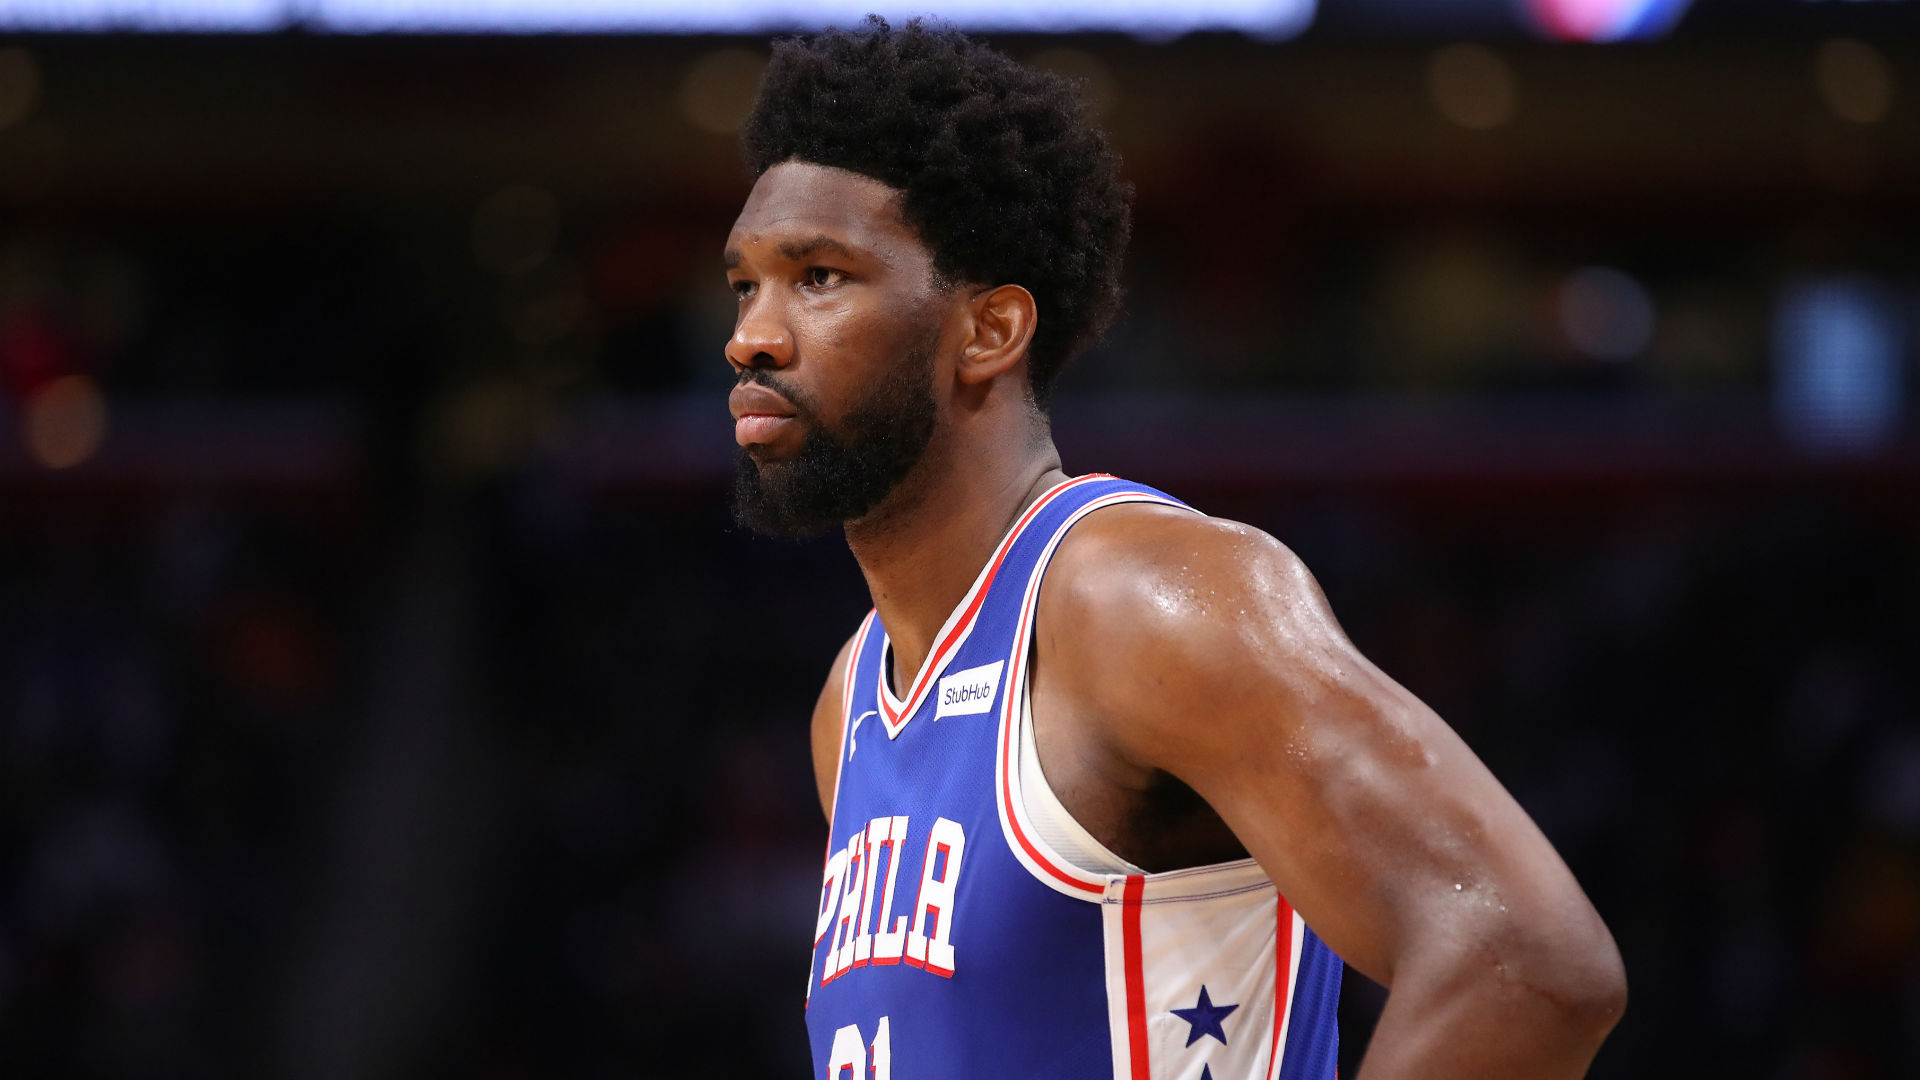 Embiid reacts to claims he opposed Ty Lue joining 76ers: 'That's got nothing to do with me'